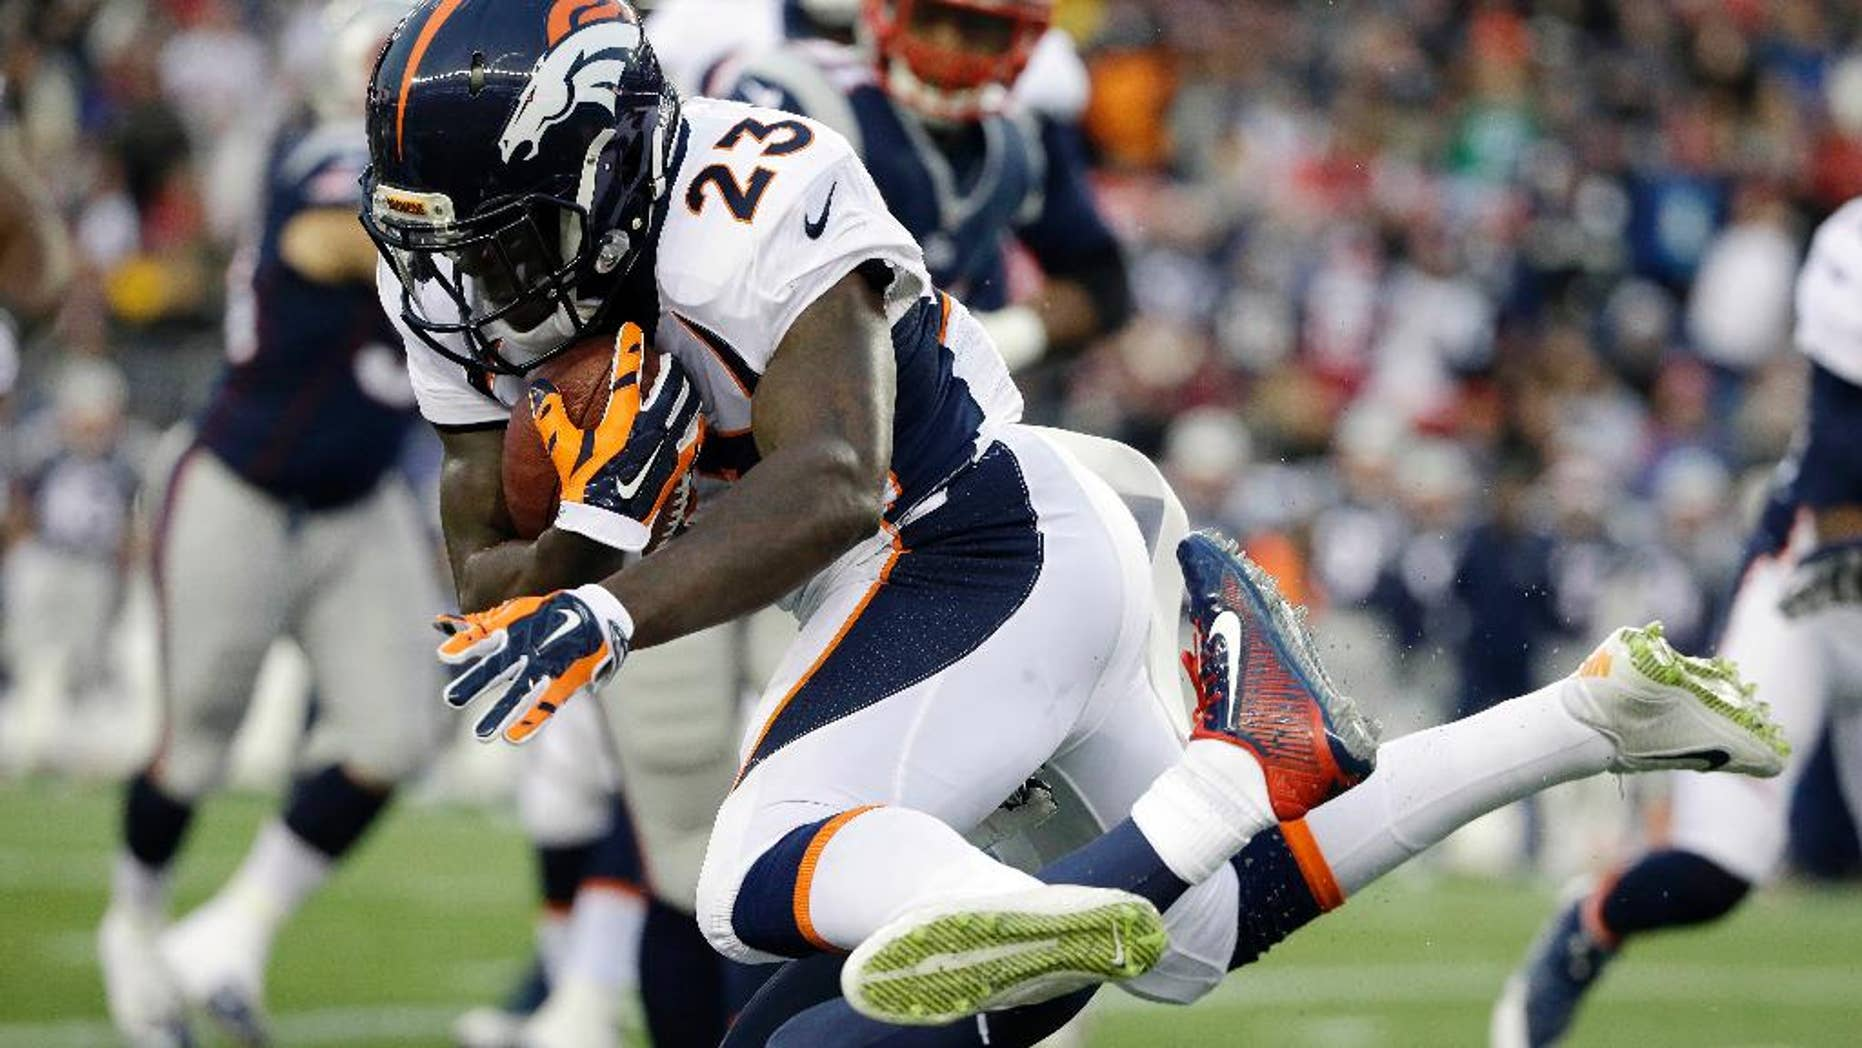 Denver Broncos running back Ronnie Hillman (23) leaps over a New England Patriots defender in the first half of an NFL football game on Sunday, Nov. 2, 2014, in Foxborough, Mass. (AP Photo/Steven Senne)